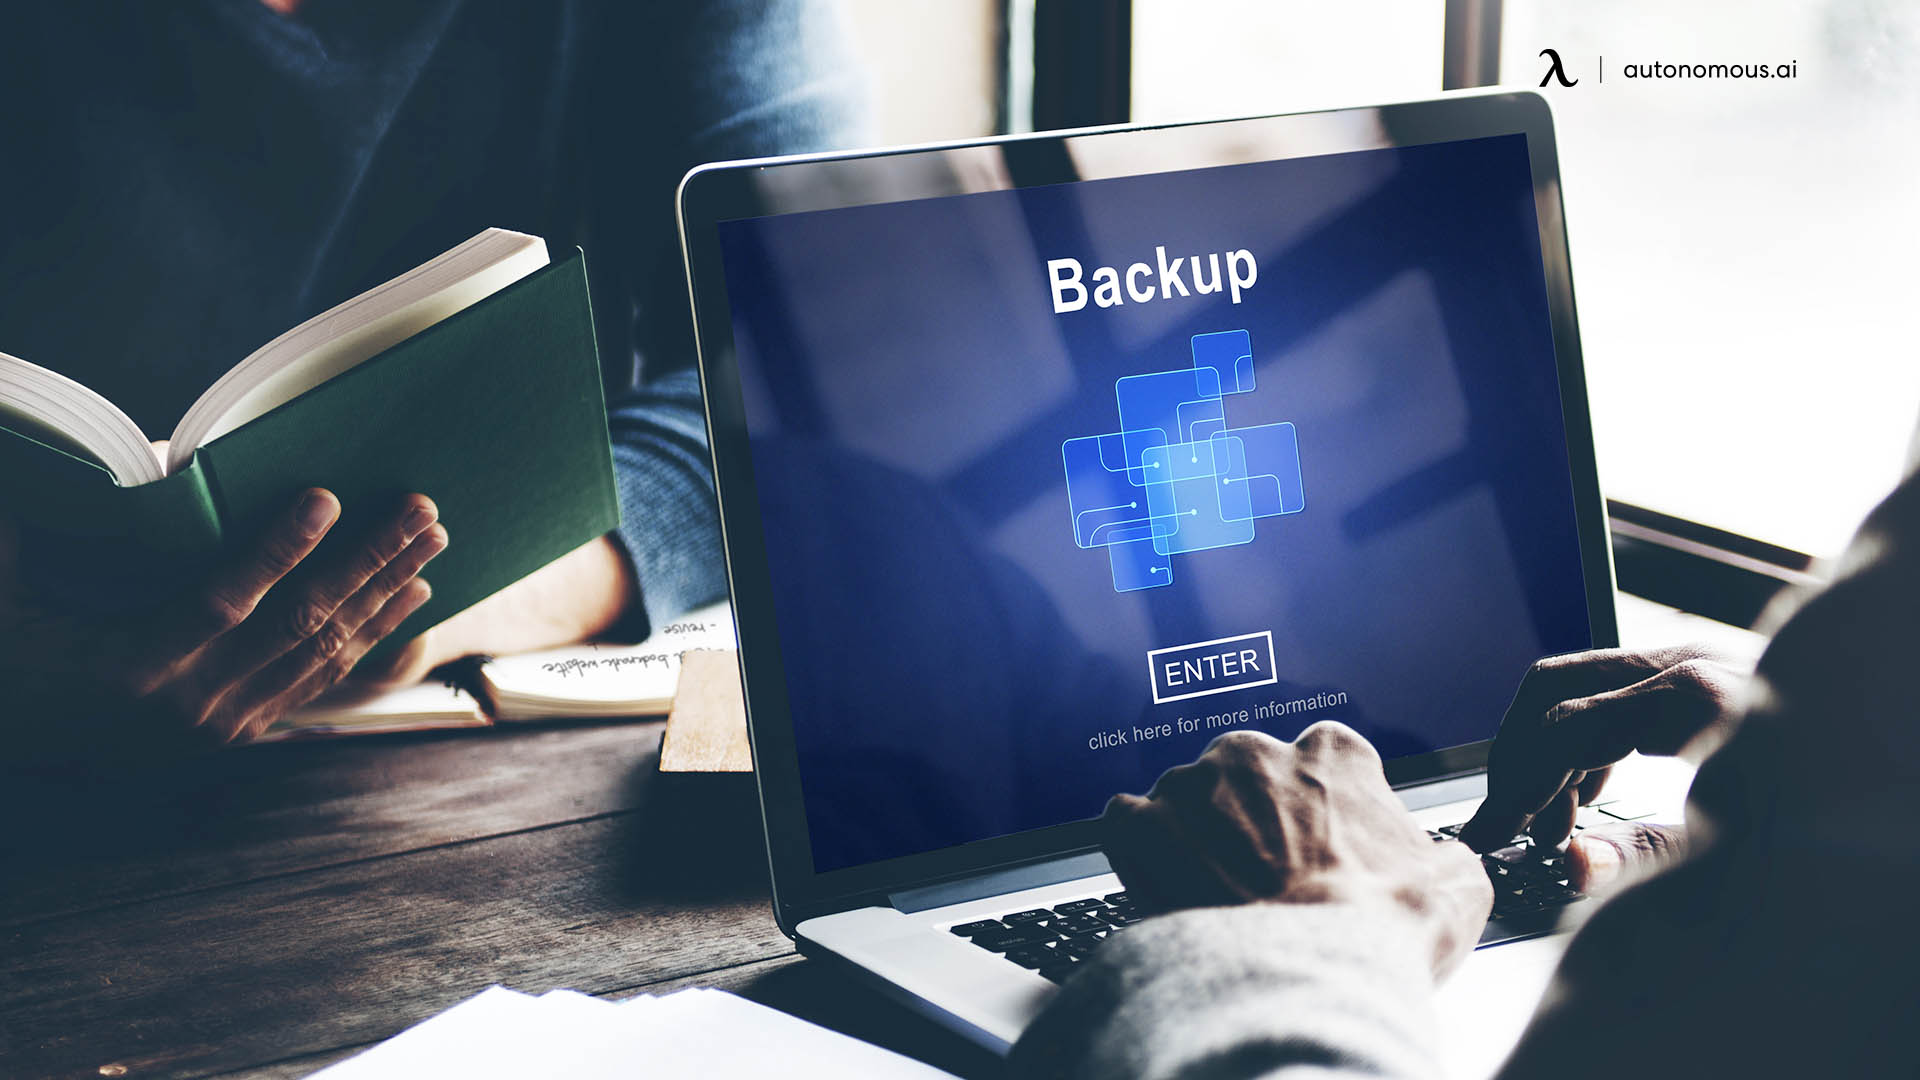 Have a backup plan and beware of complexity